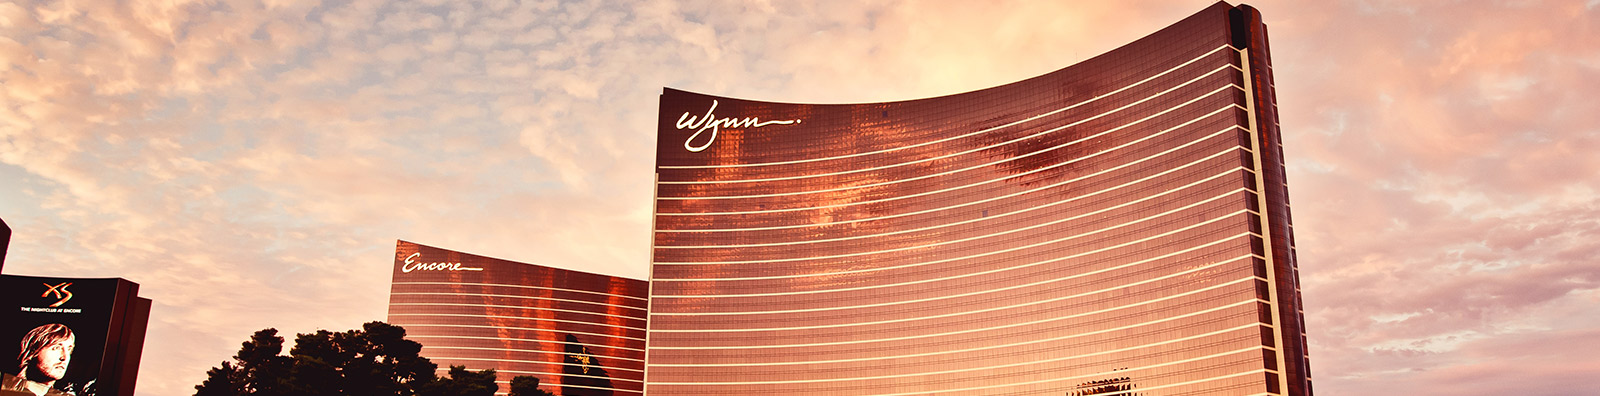 Las Vegas Showdown: Wynn vs. Encore